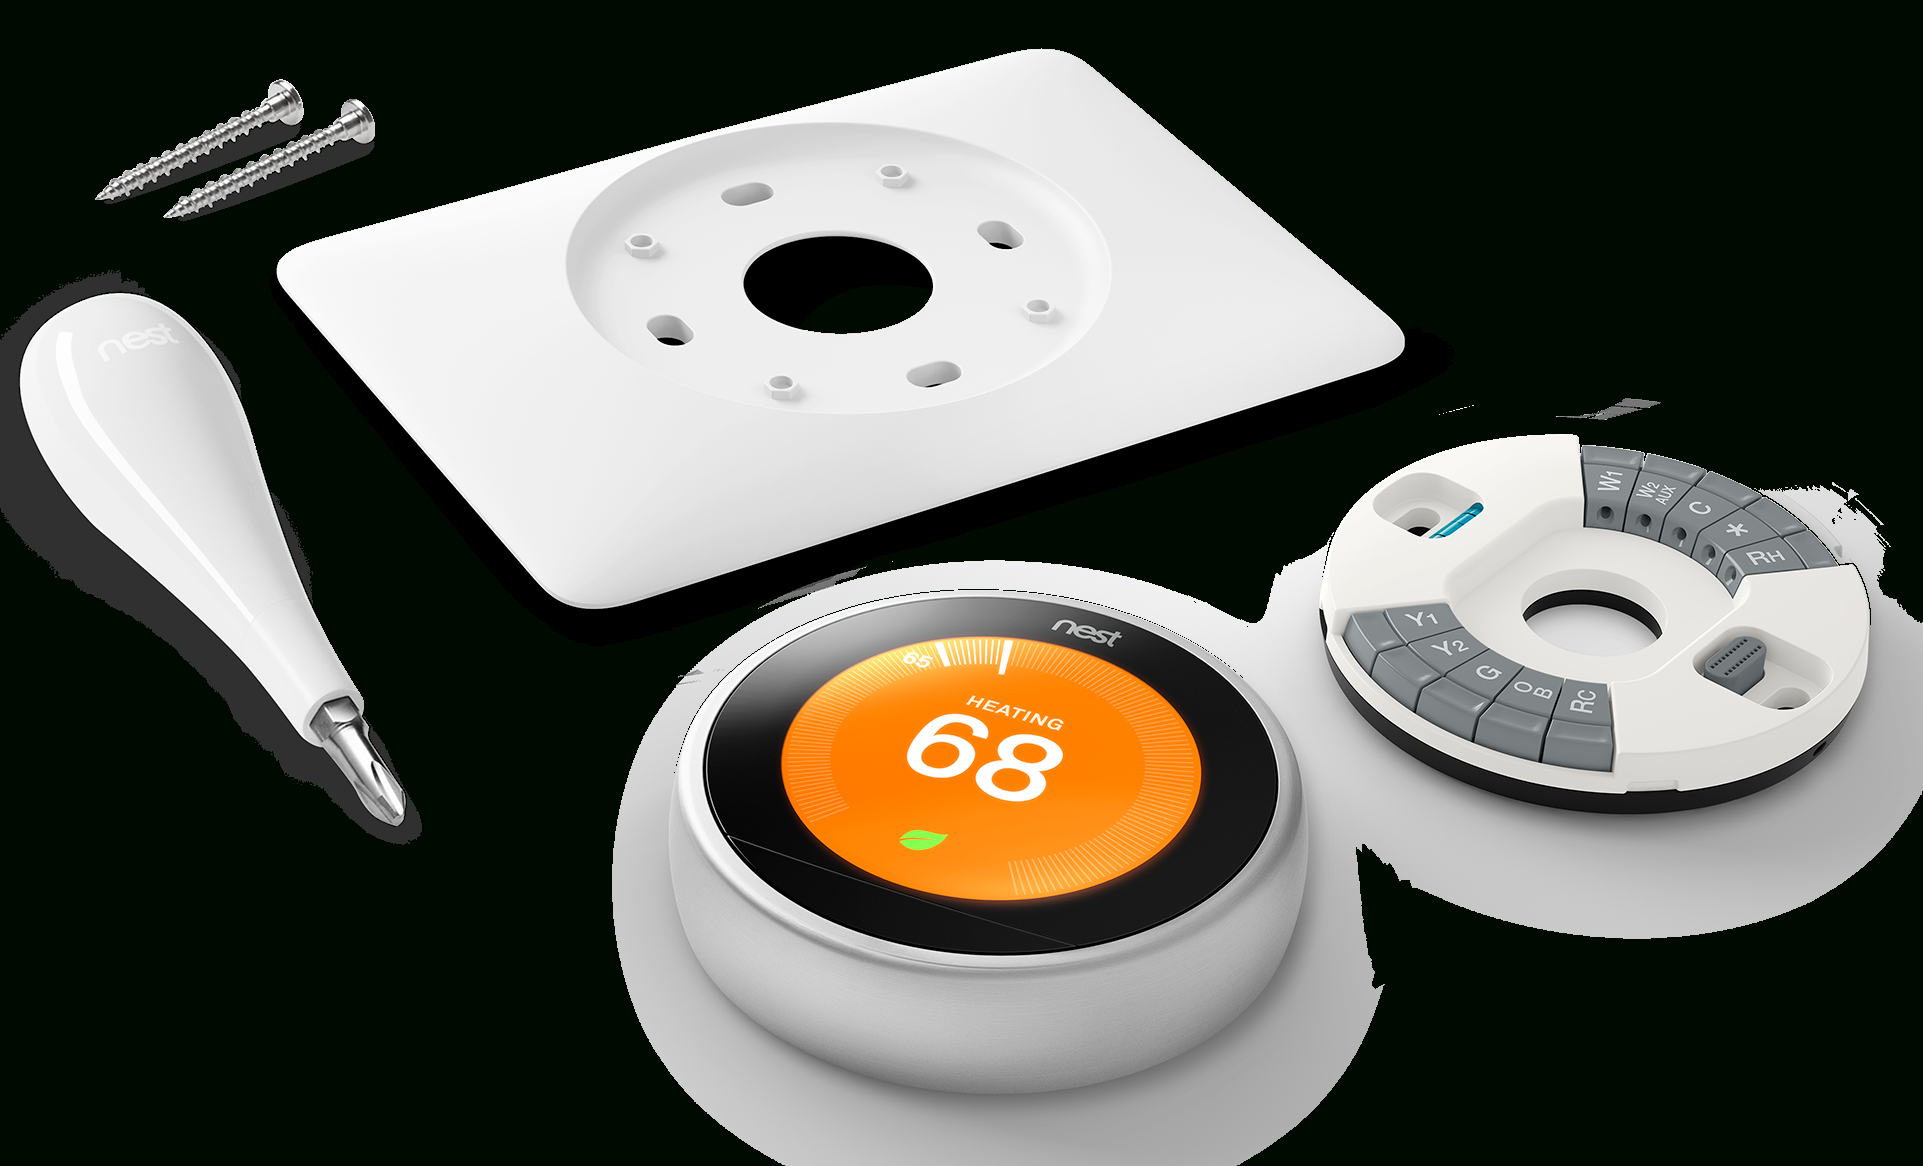 How To Install Your Nest Thermostat - Wiring Diagram For Nest Thermostat E